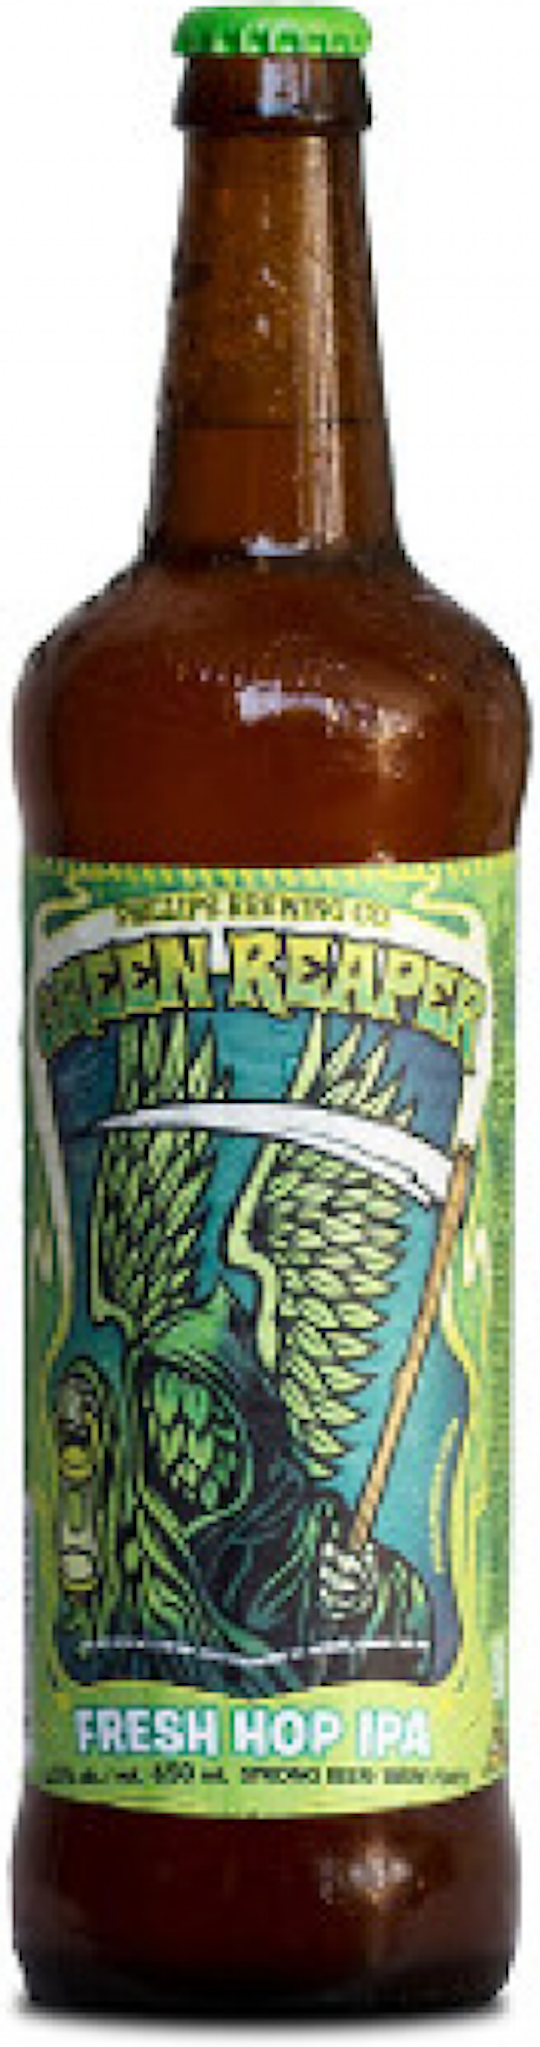 phillips-brewing-malting-co-green-reaper-fresh-hop-ipa_1477675906